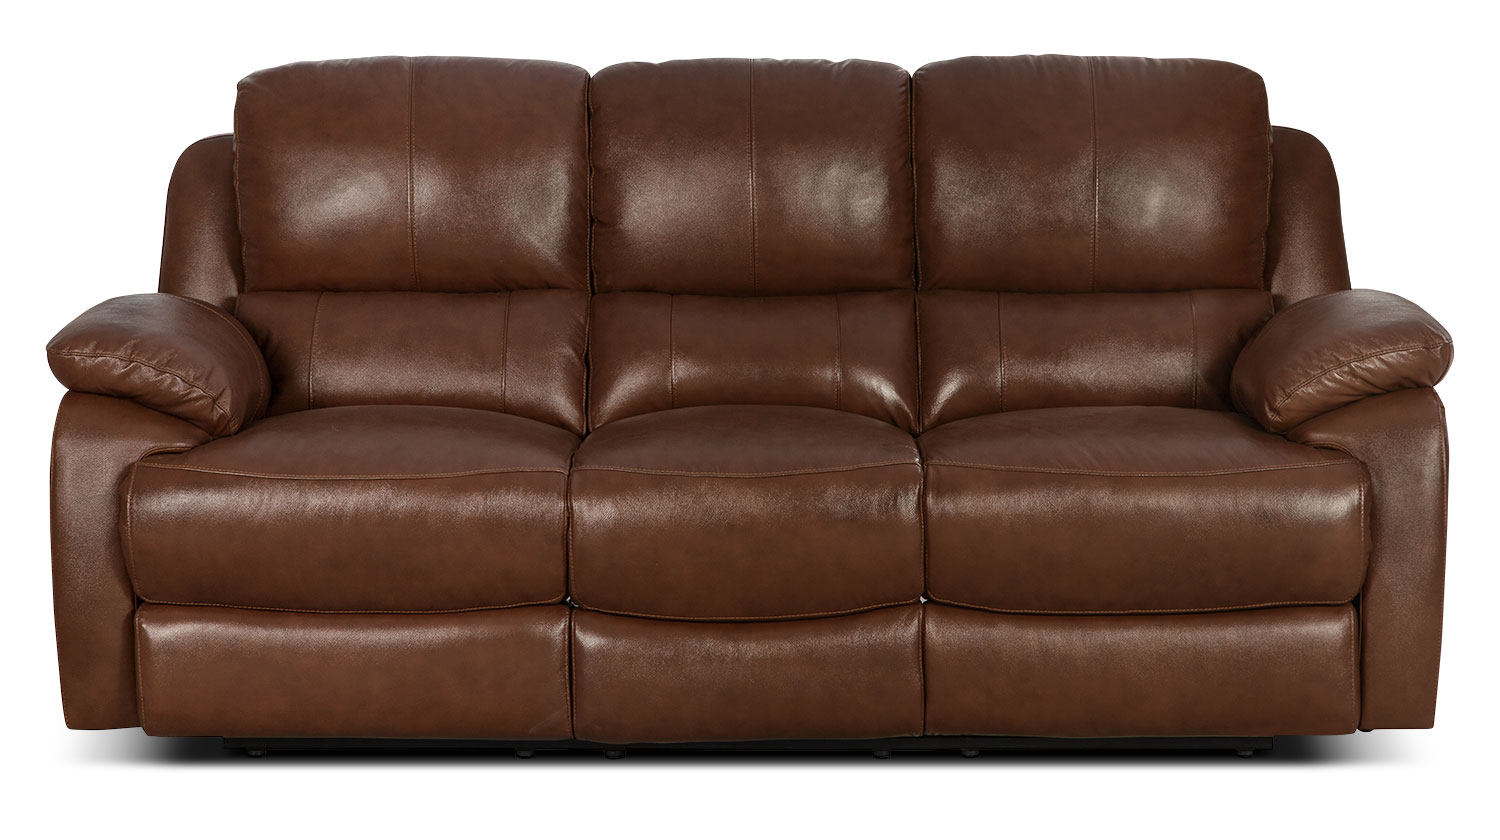 Cairo Genuine Leather Power Reclining Sofa – Brown